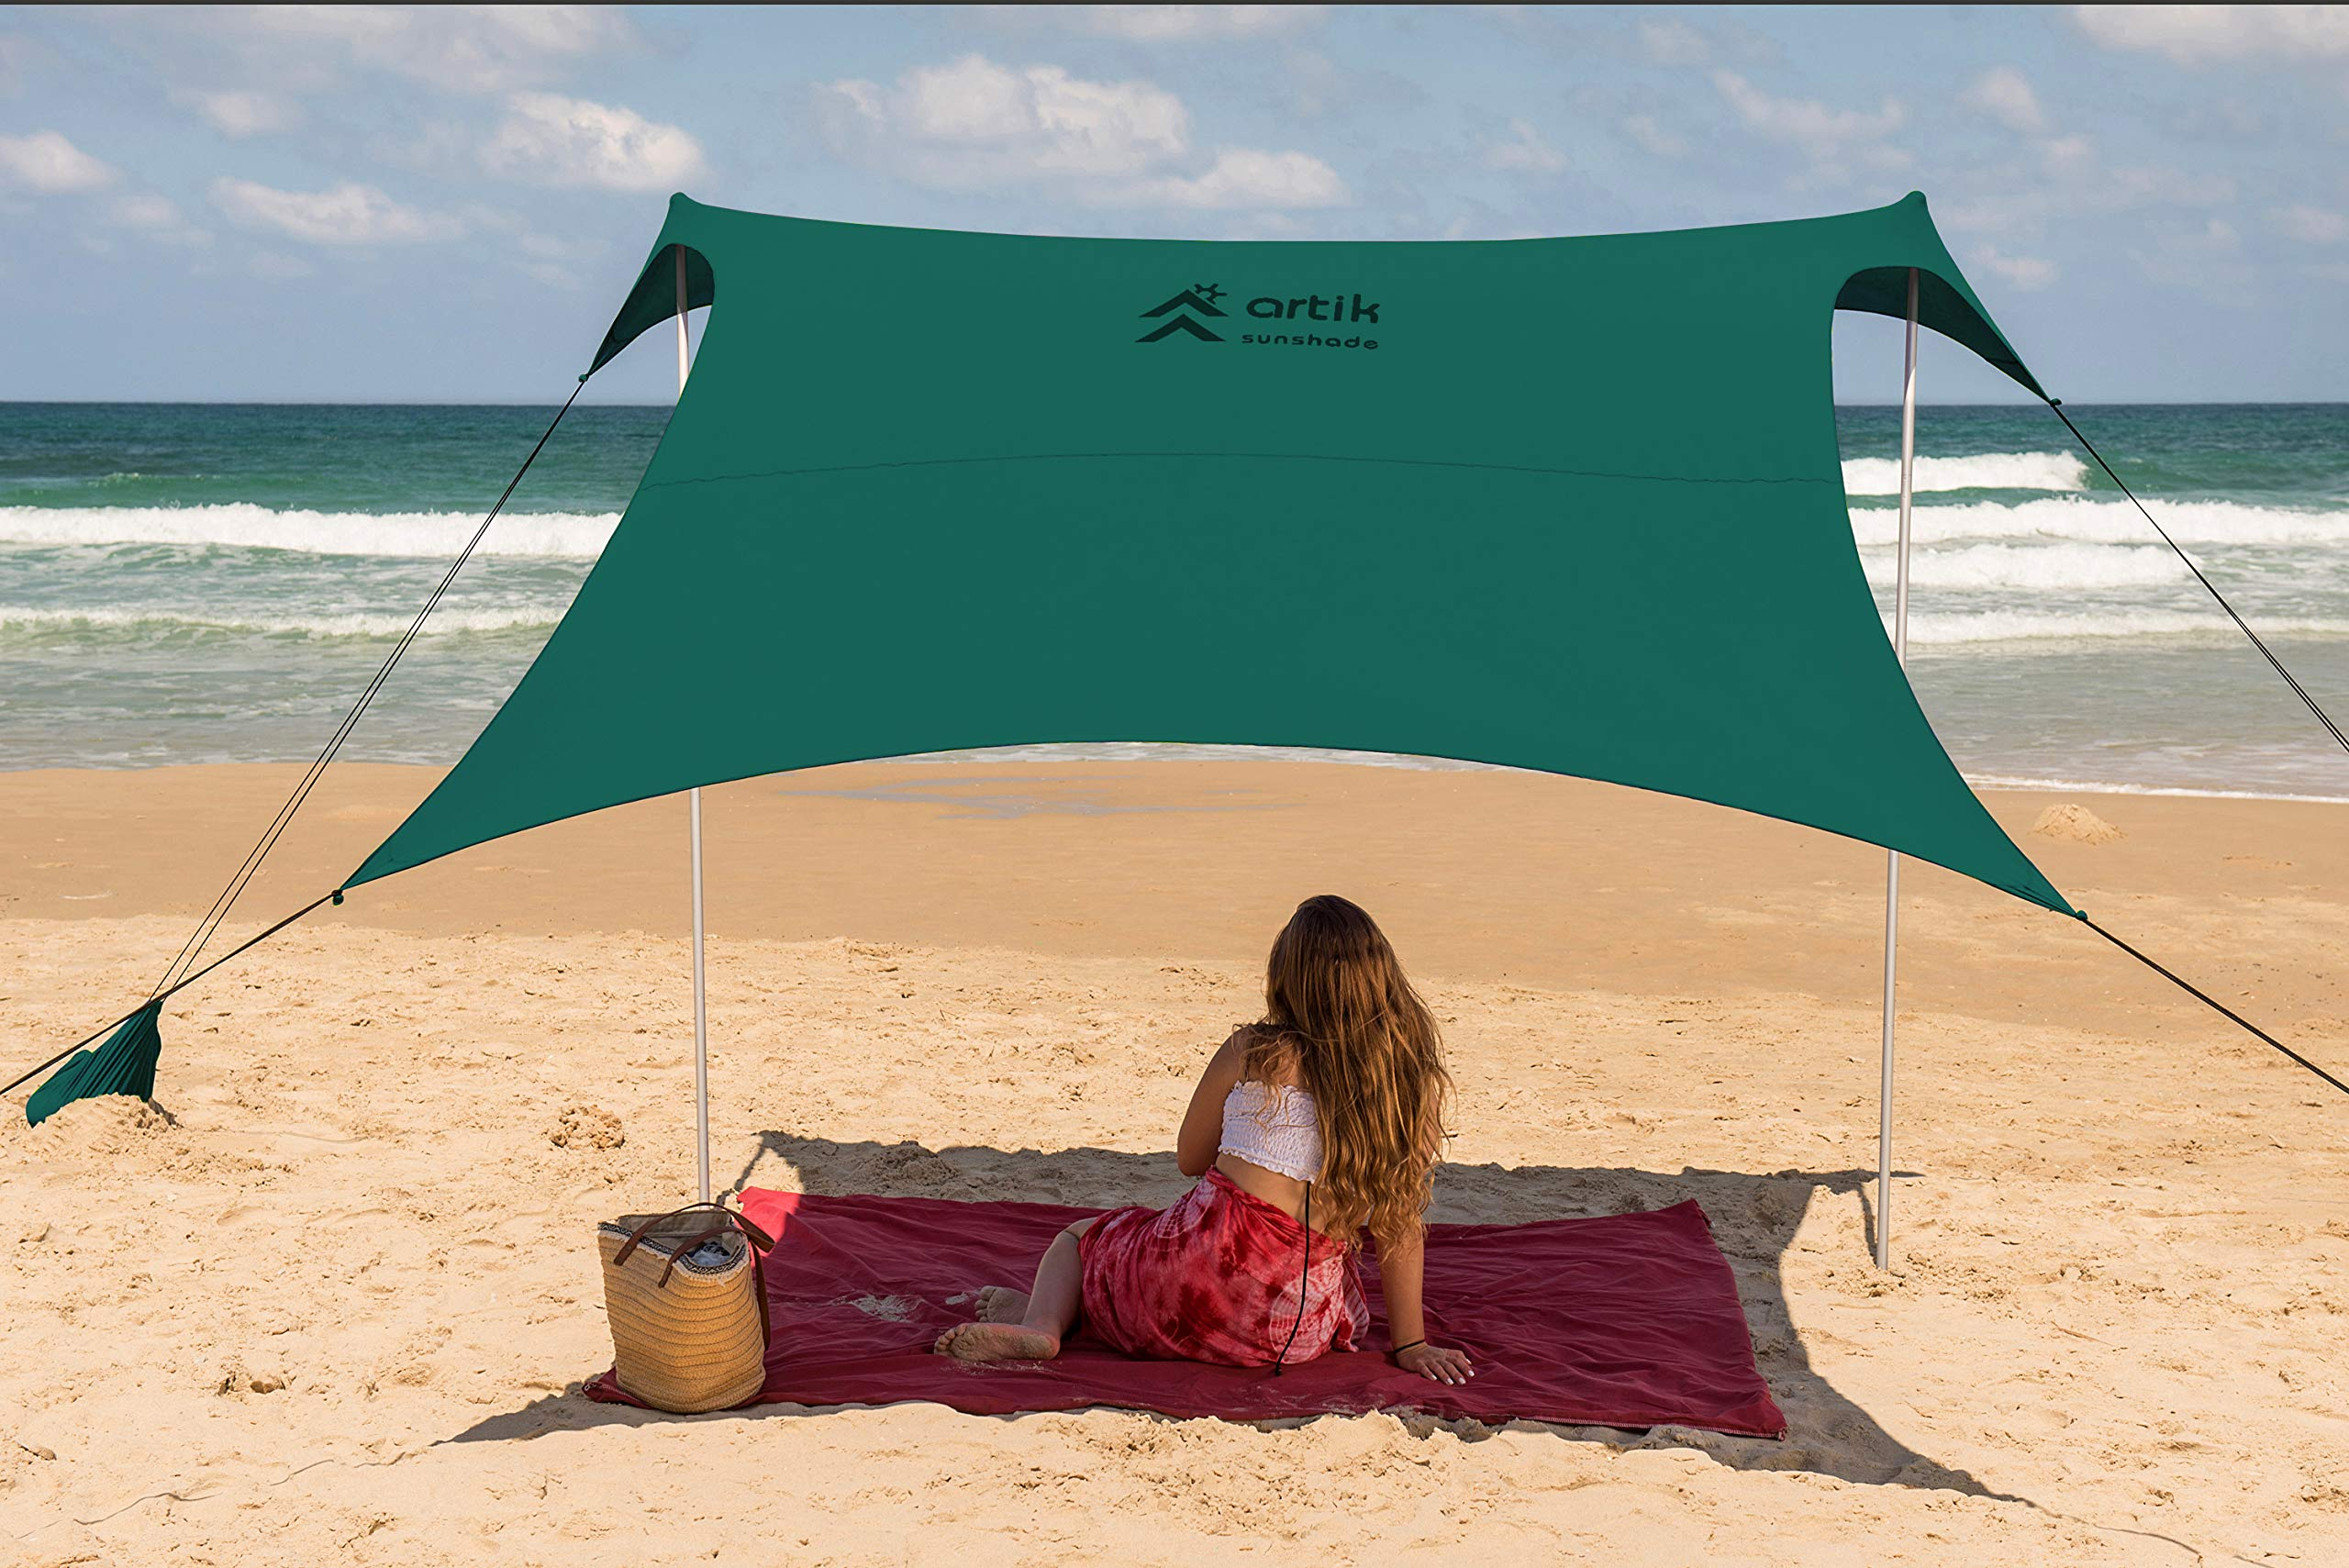 Artik Sun Shade (Green, Large) by ARTIK SUNSHADE